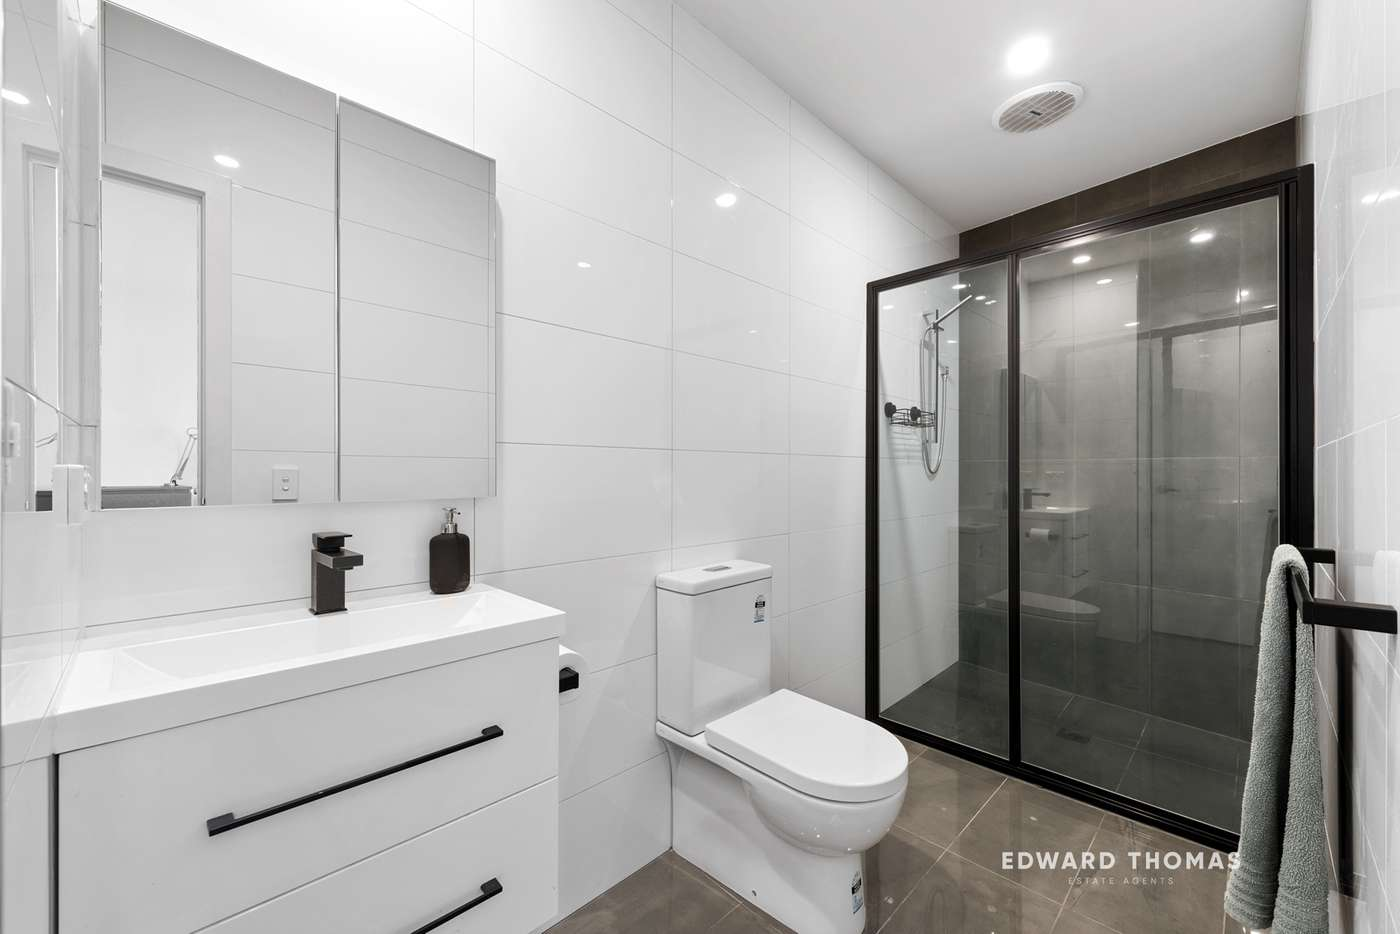 Sixth view of Homely apartment listing, 106/651 Moreland Road, Pascoe Vale South VIC 3044